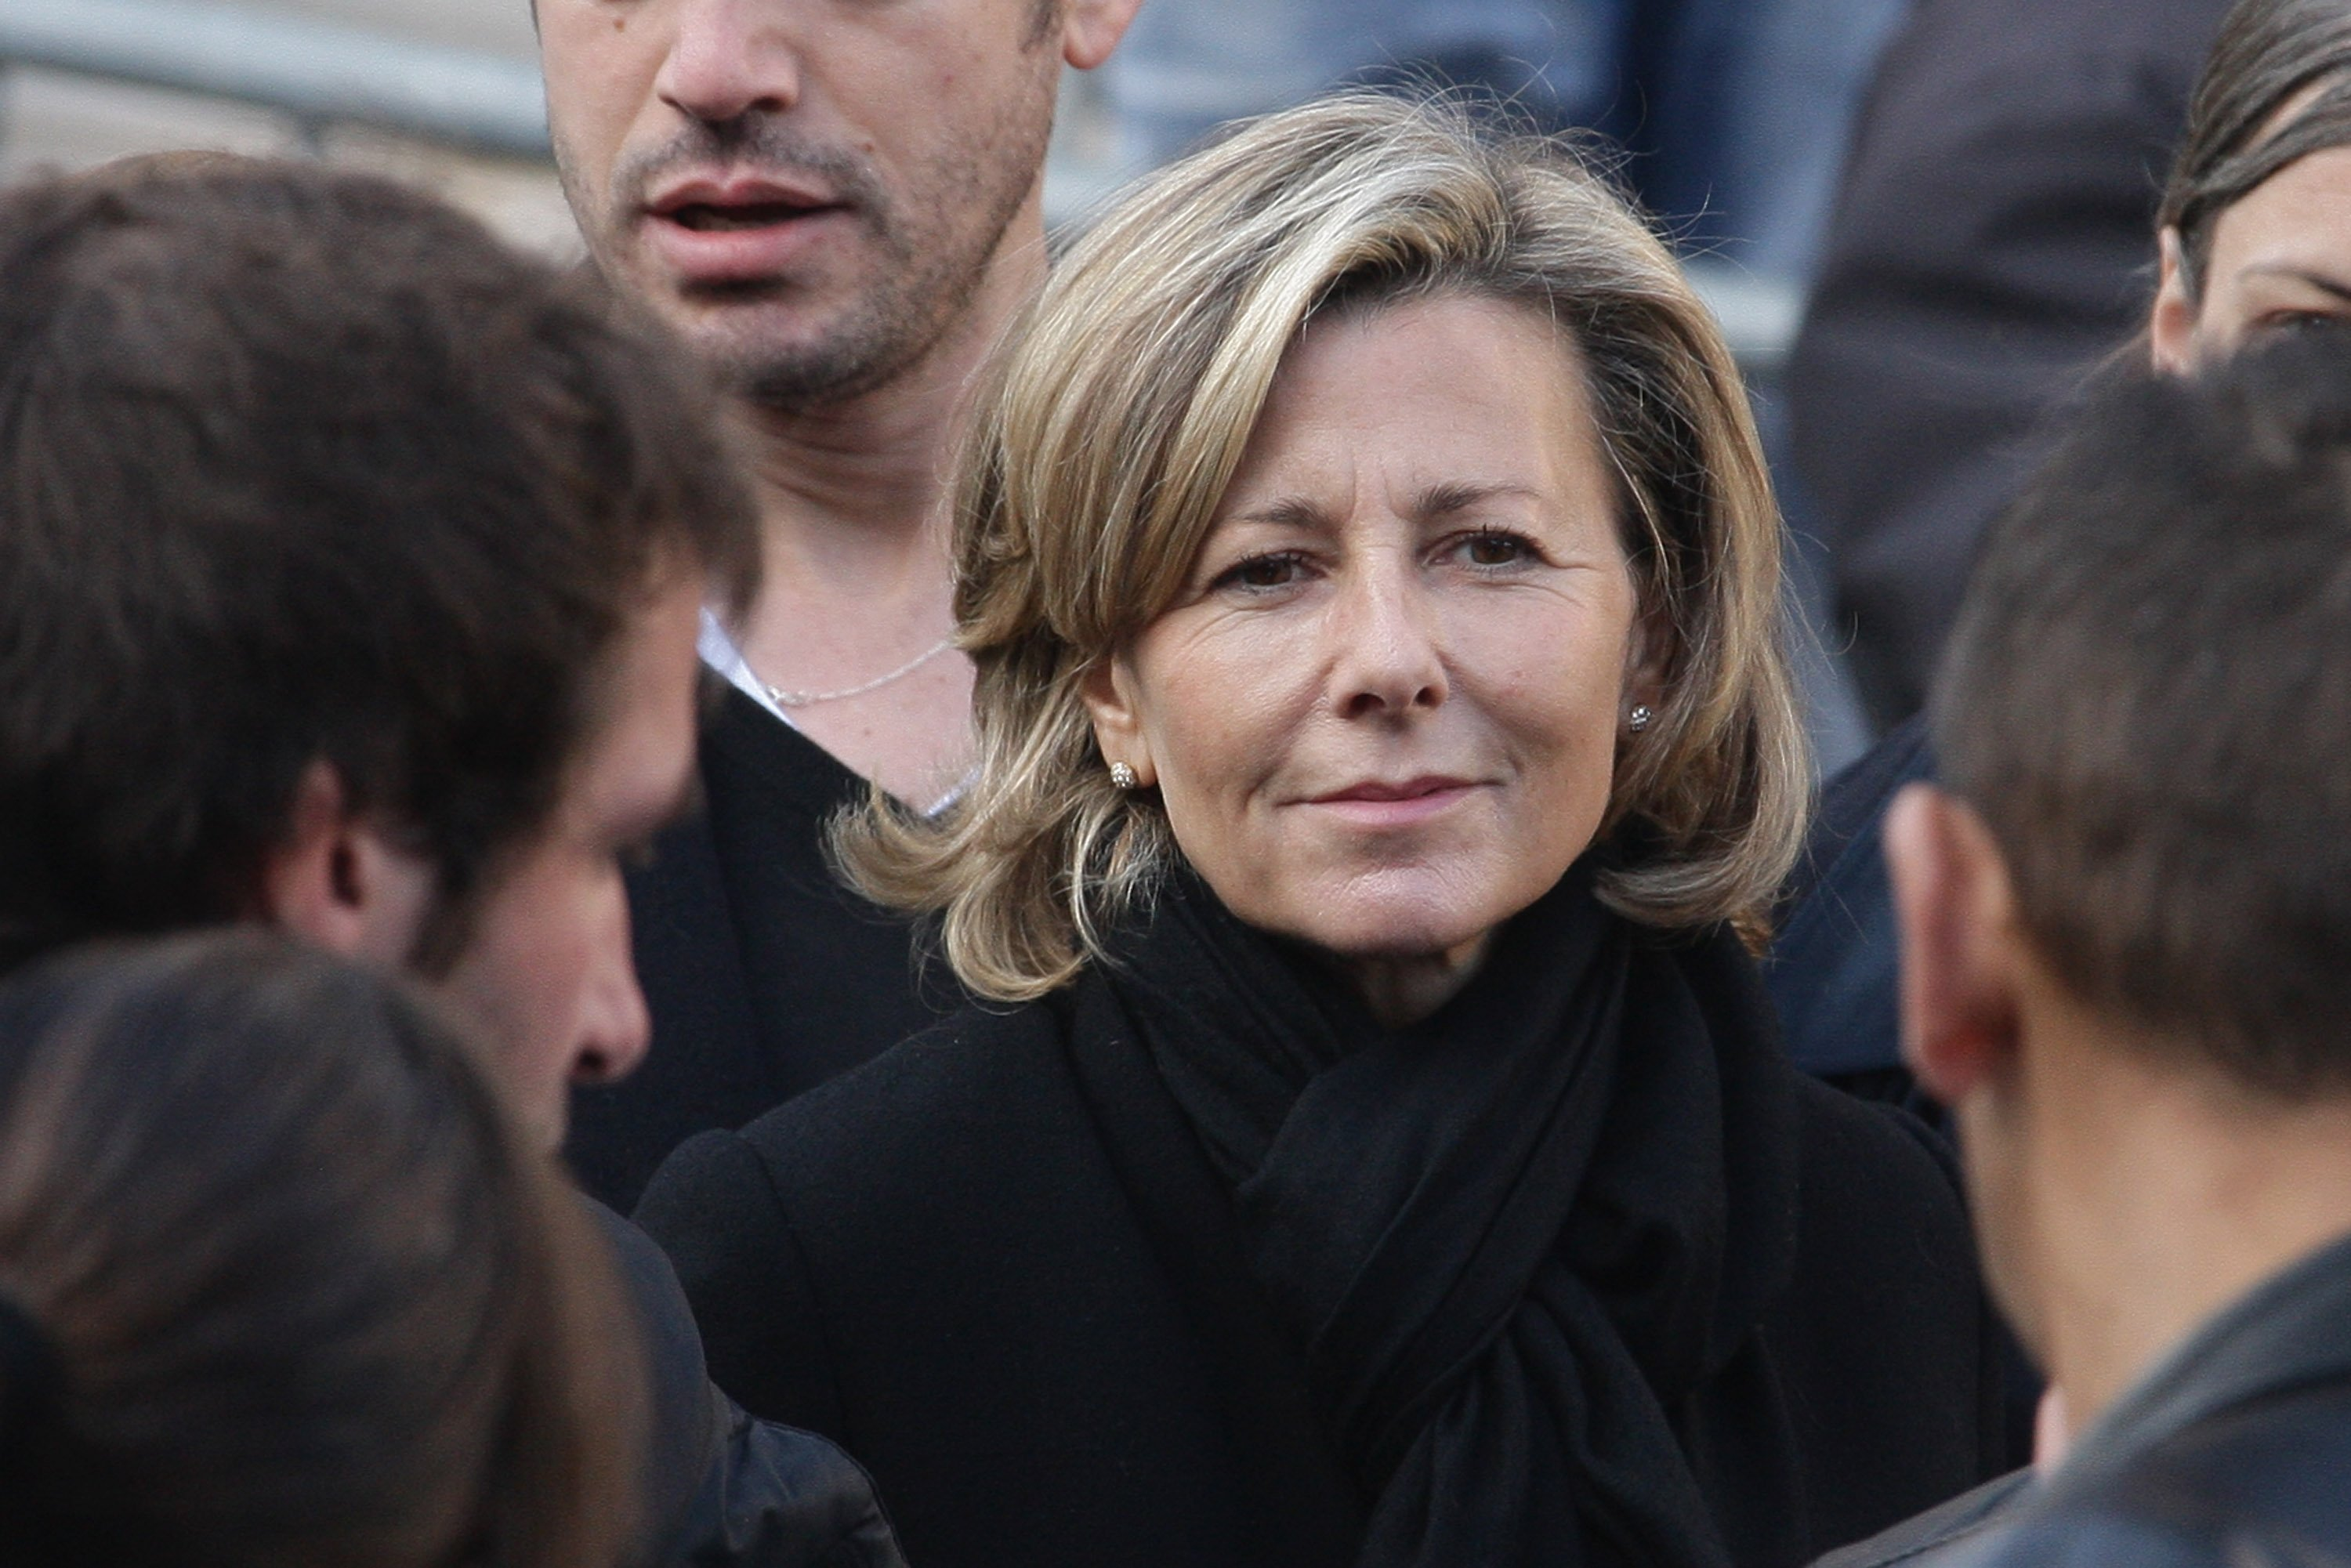 Claire Chazal le 17 octobre 2008 à Bougival, France | Photo : GettyImages